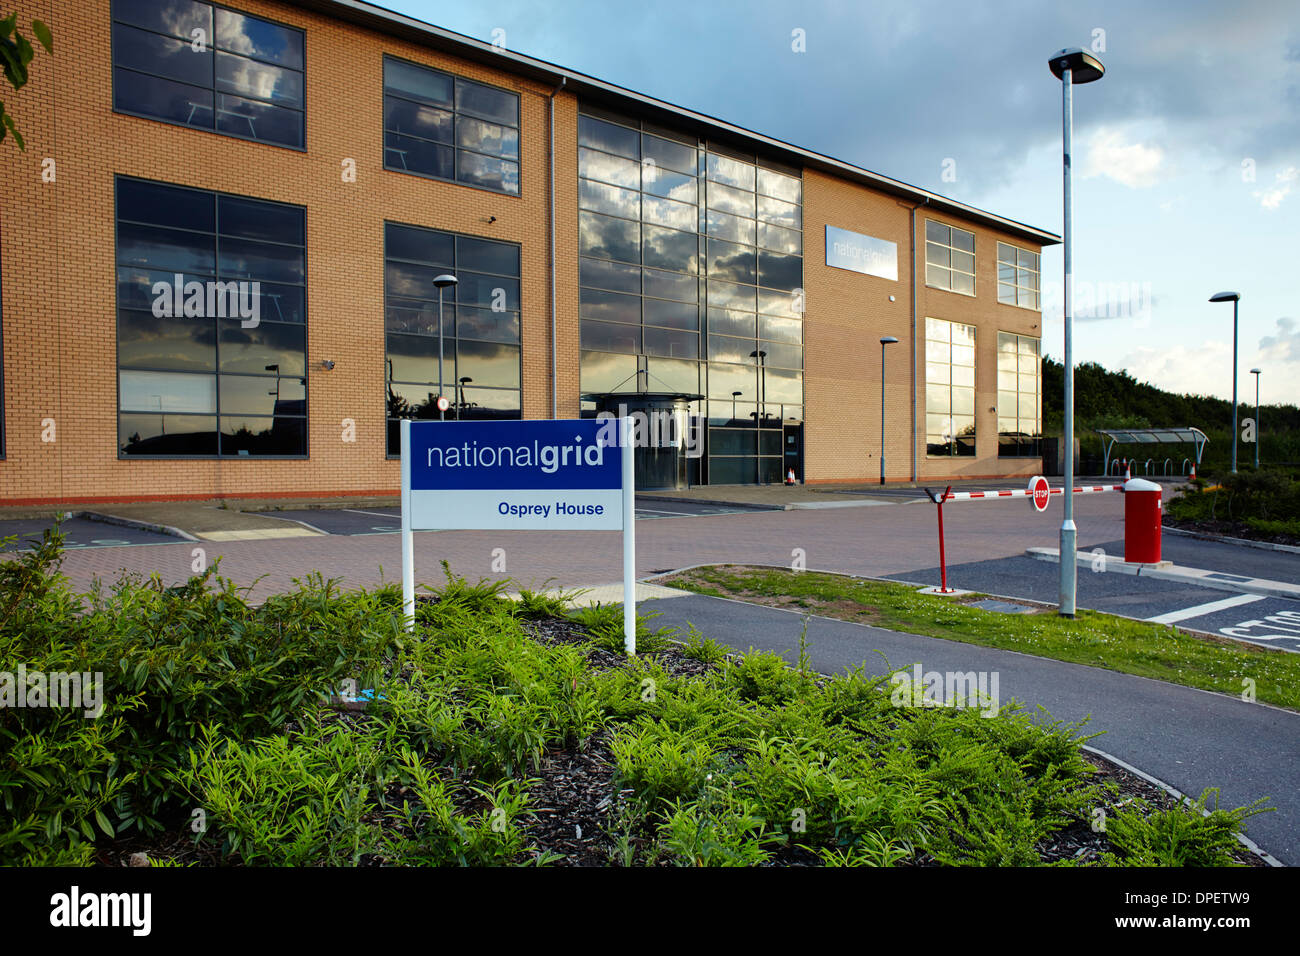 National Grid Osprey House building East Midlands Airport - Stock Image